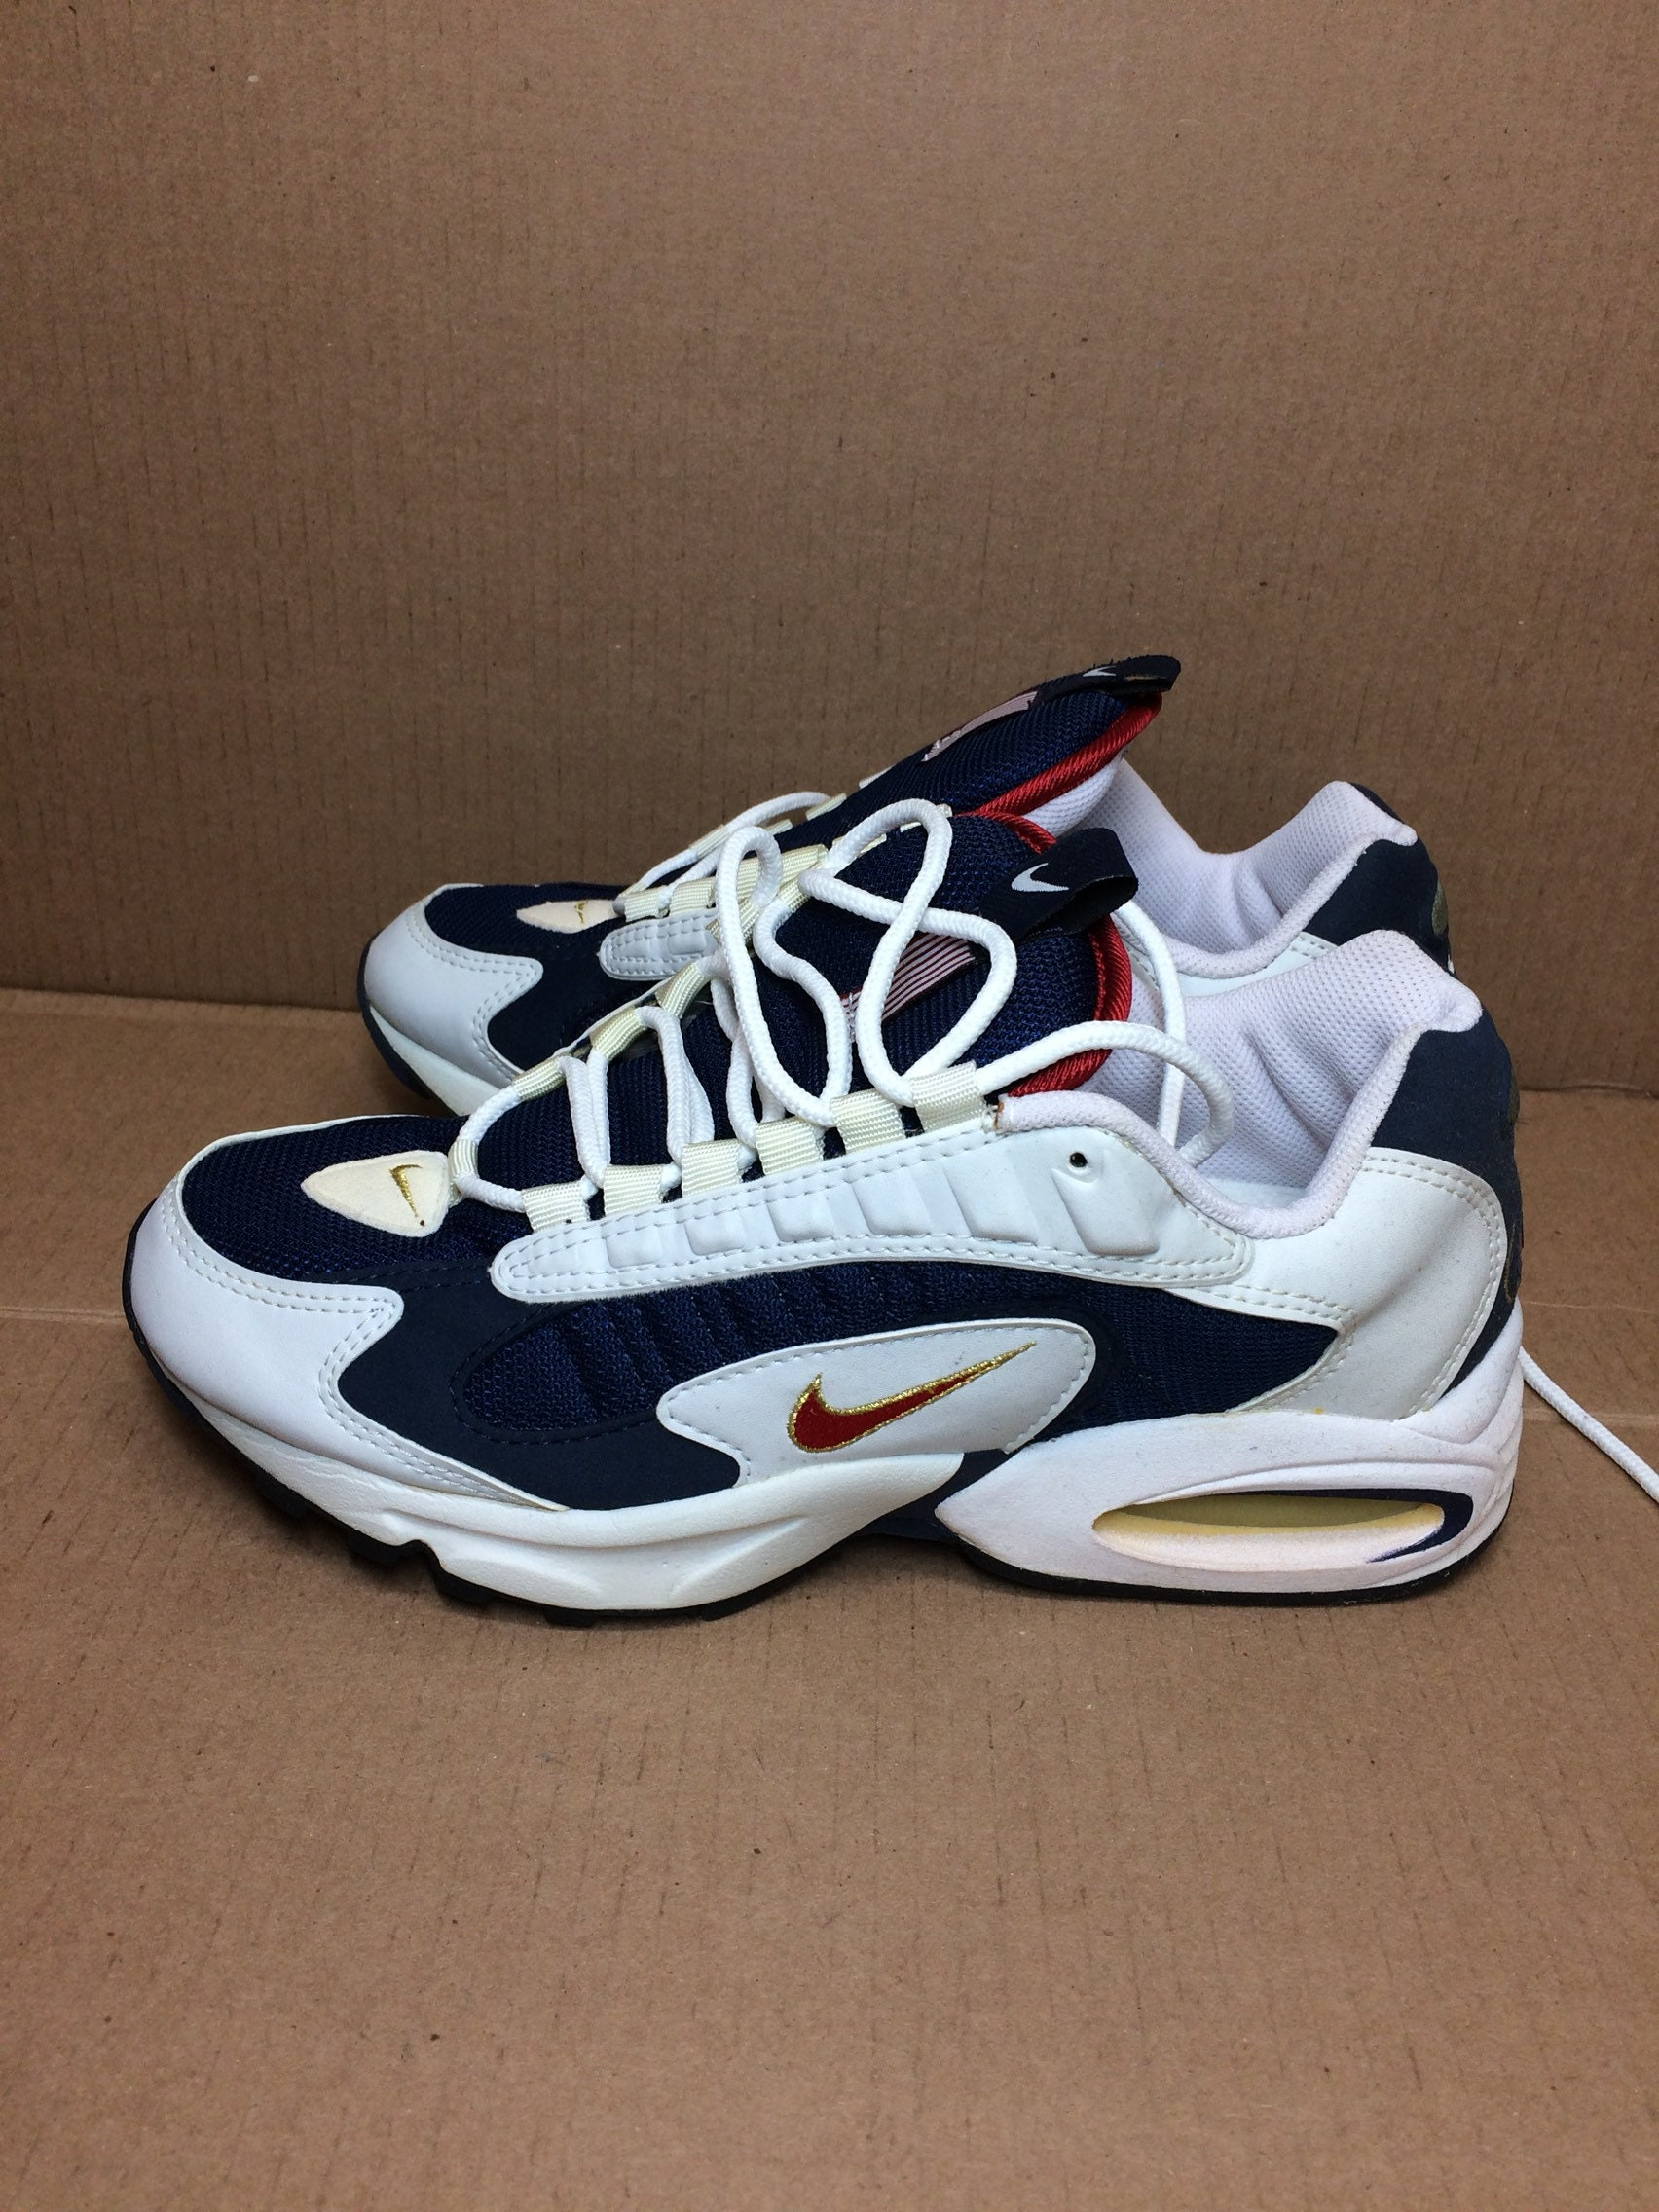 2df02592dc94c deadstock Nike Air Max Triax 96 USA Olympics running shoes size 7 ...